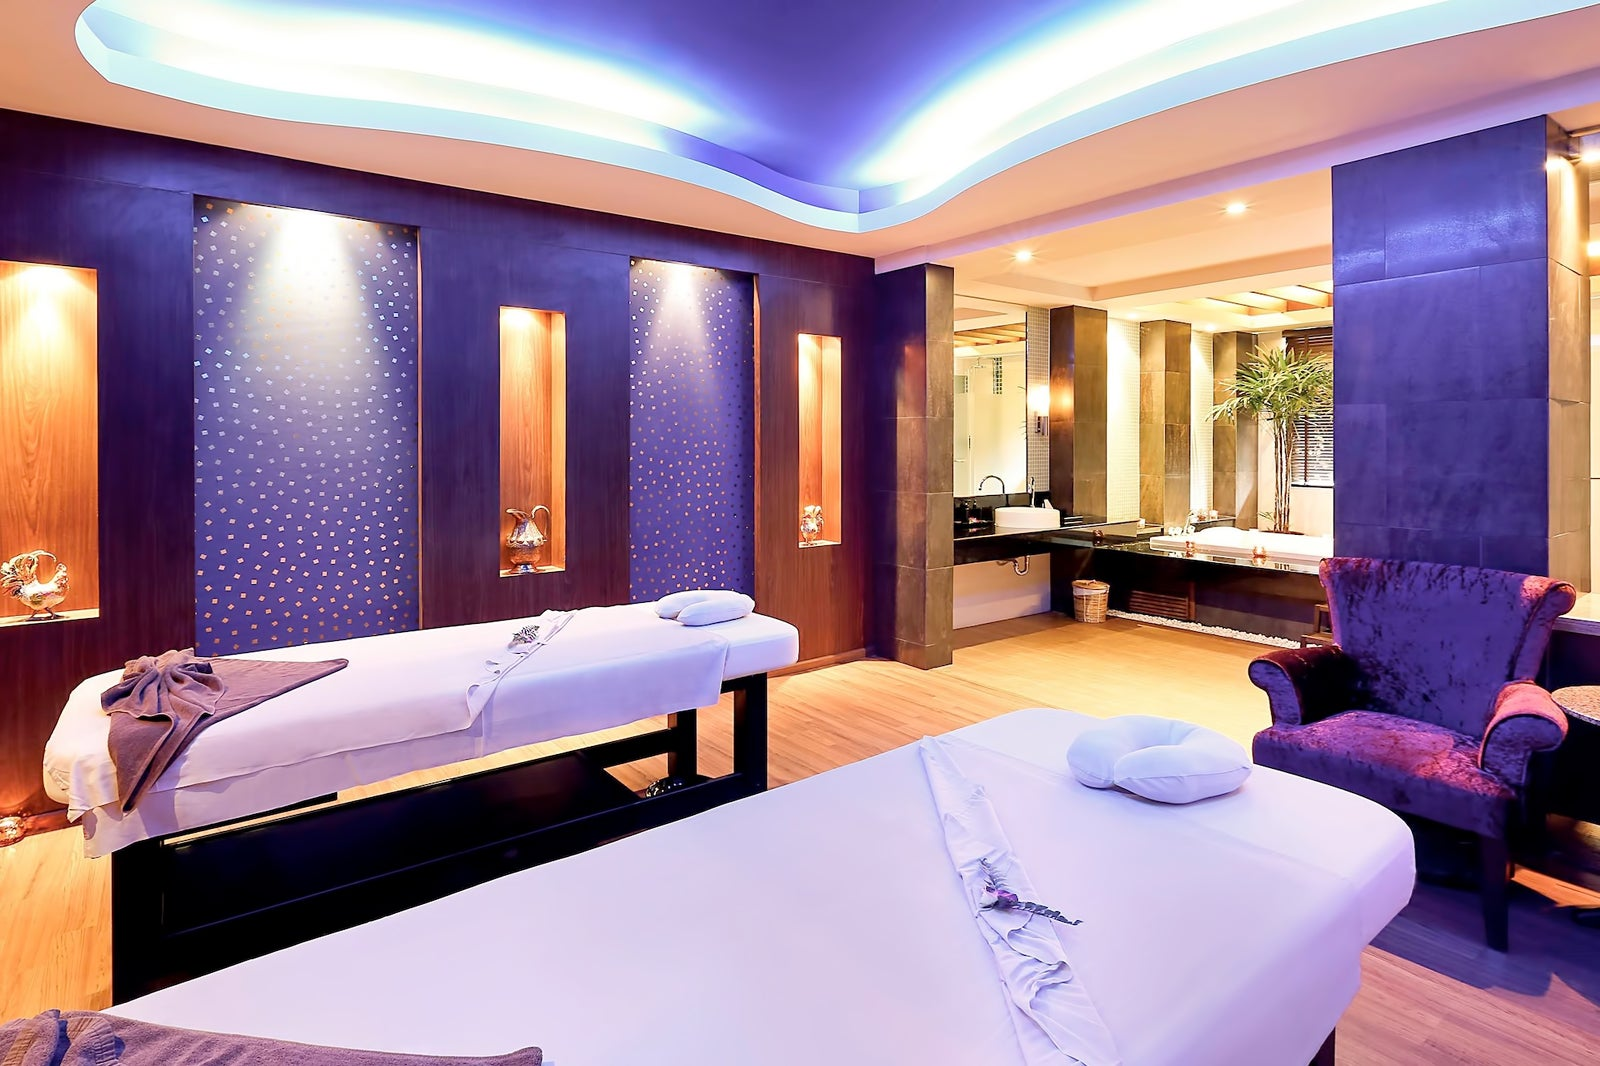 10 ways to go tropical for a relaxing and trendy home office.htm 9 great spas in patong best places to get a massage in patong  9 great spas in patong best places to